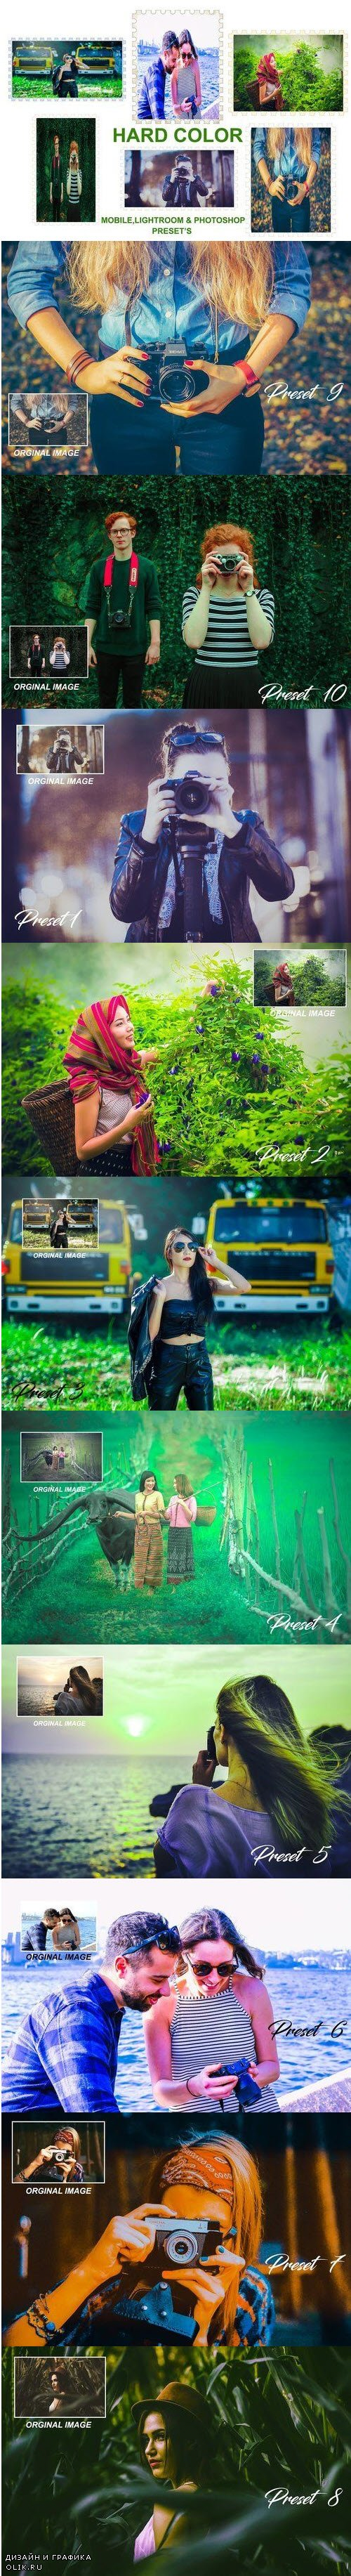 Hard Color - Lightroom Presets - 4269855